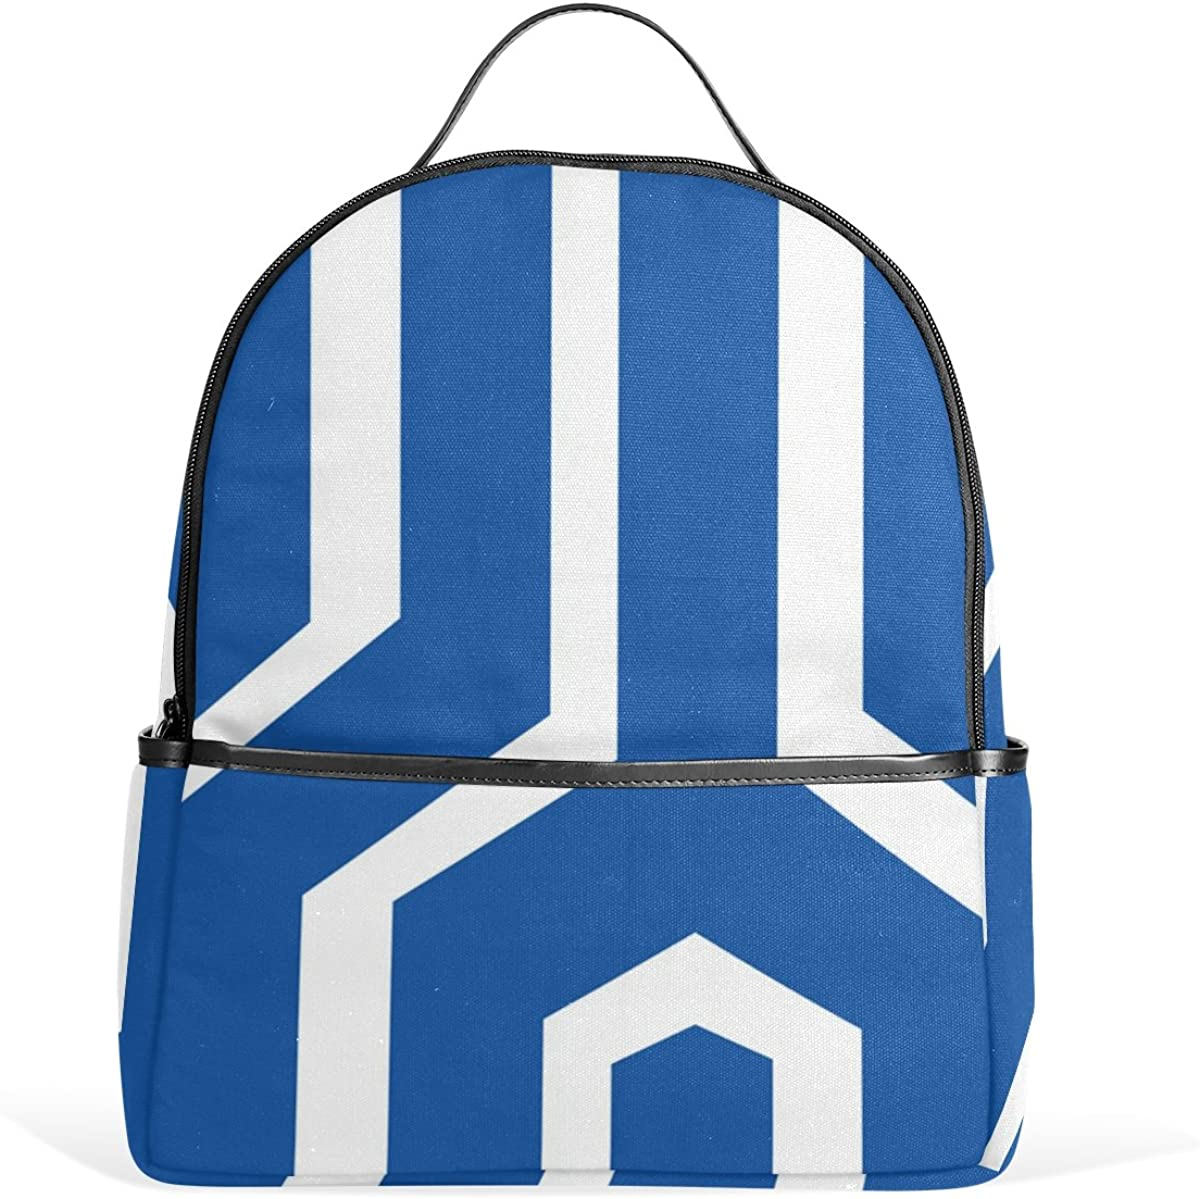 Mr.Weng Blue And White Navy Stripe Printed Canvas Backpack For Girl and Children